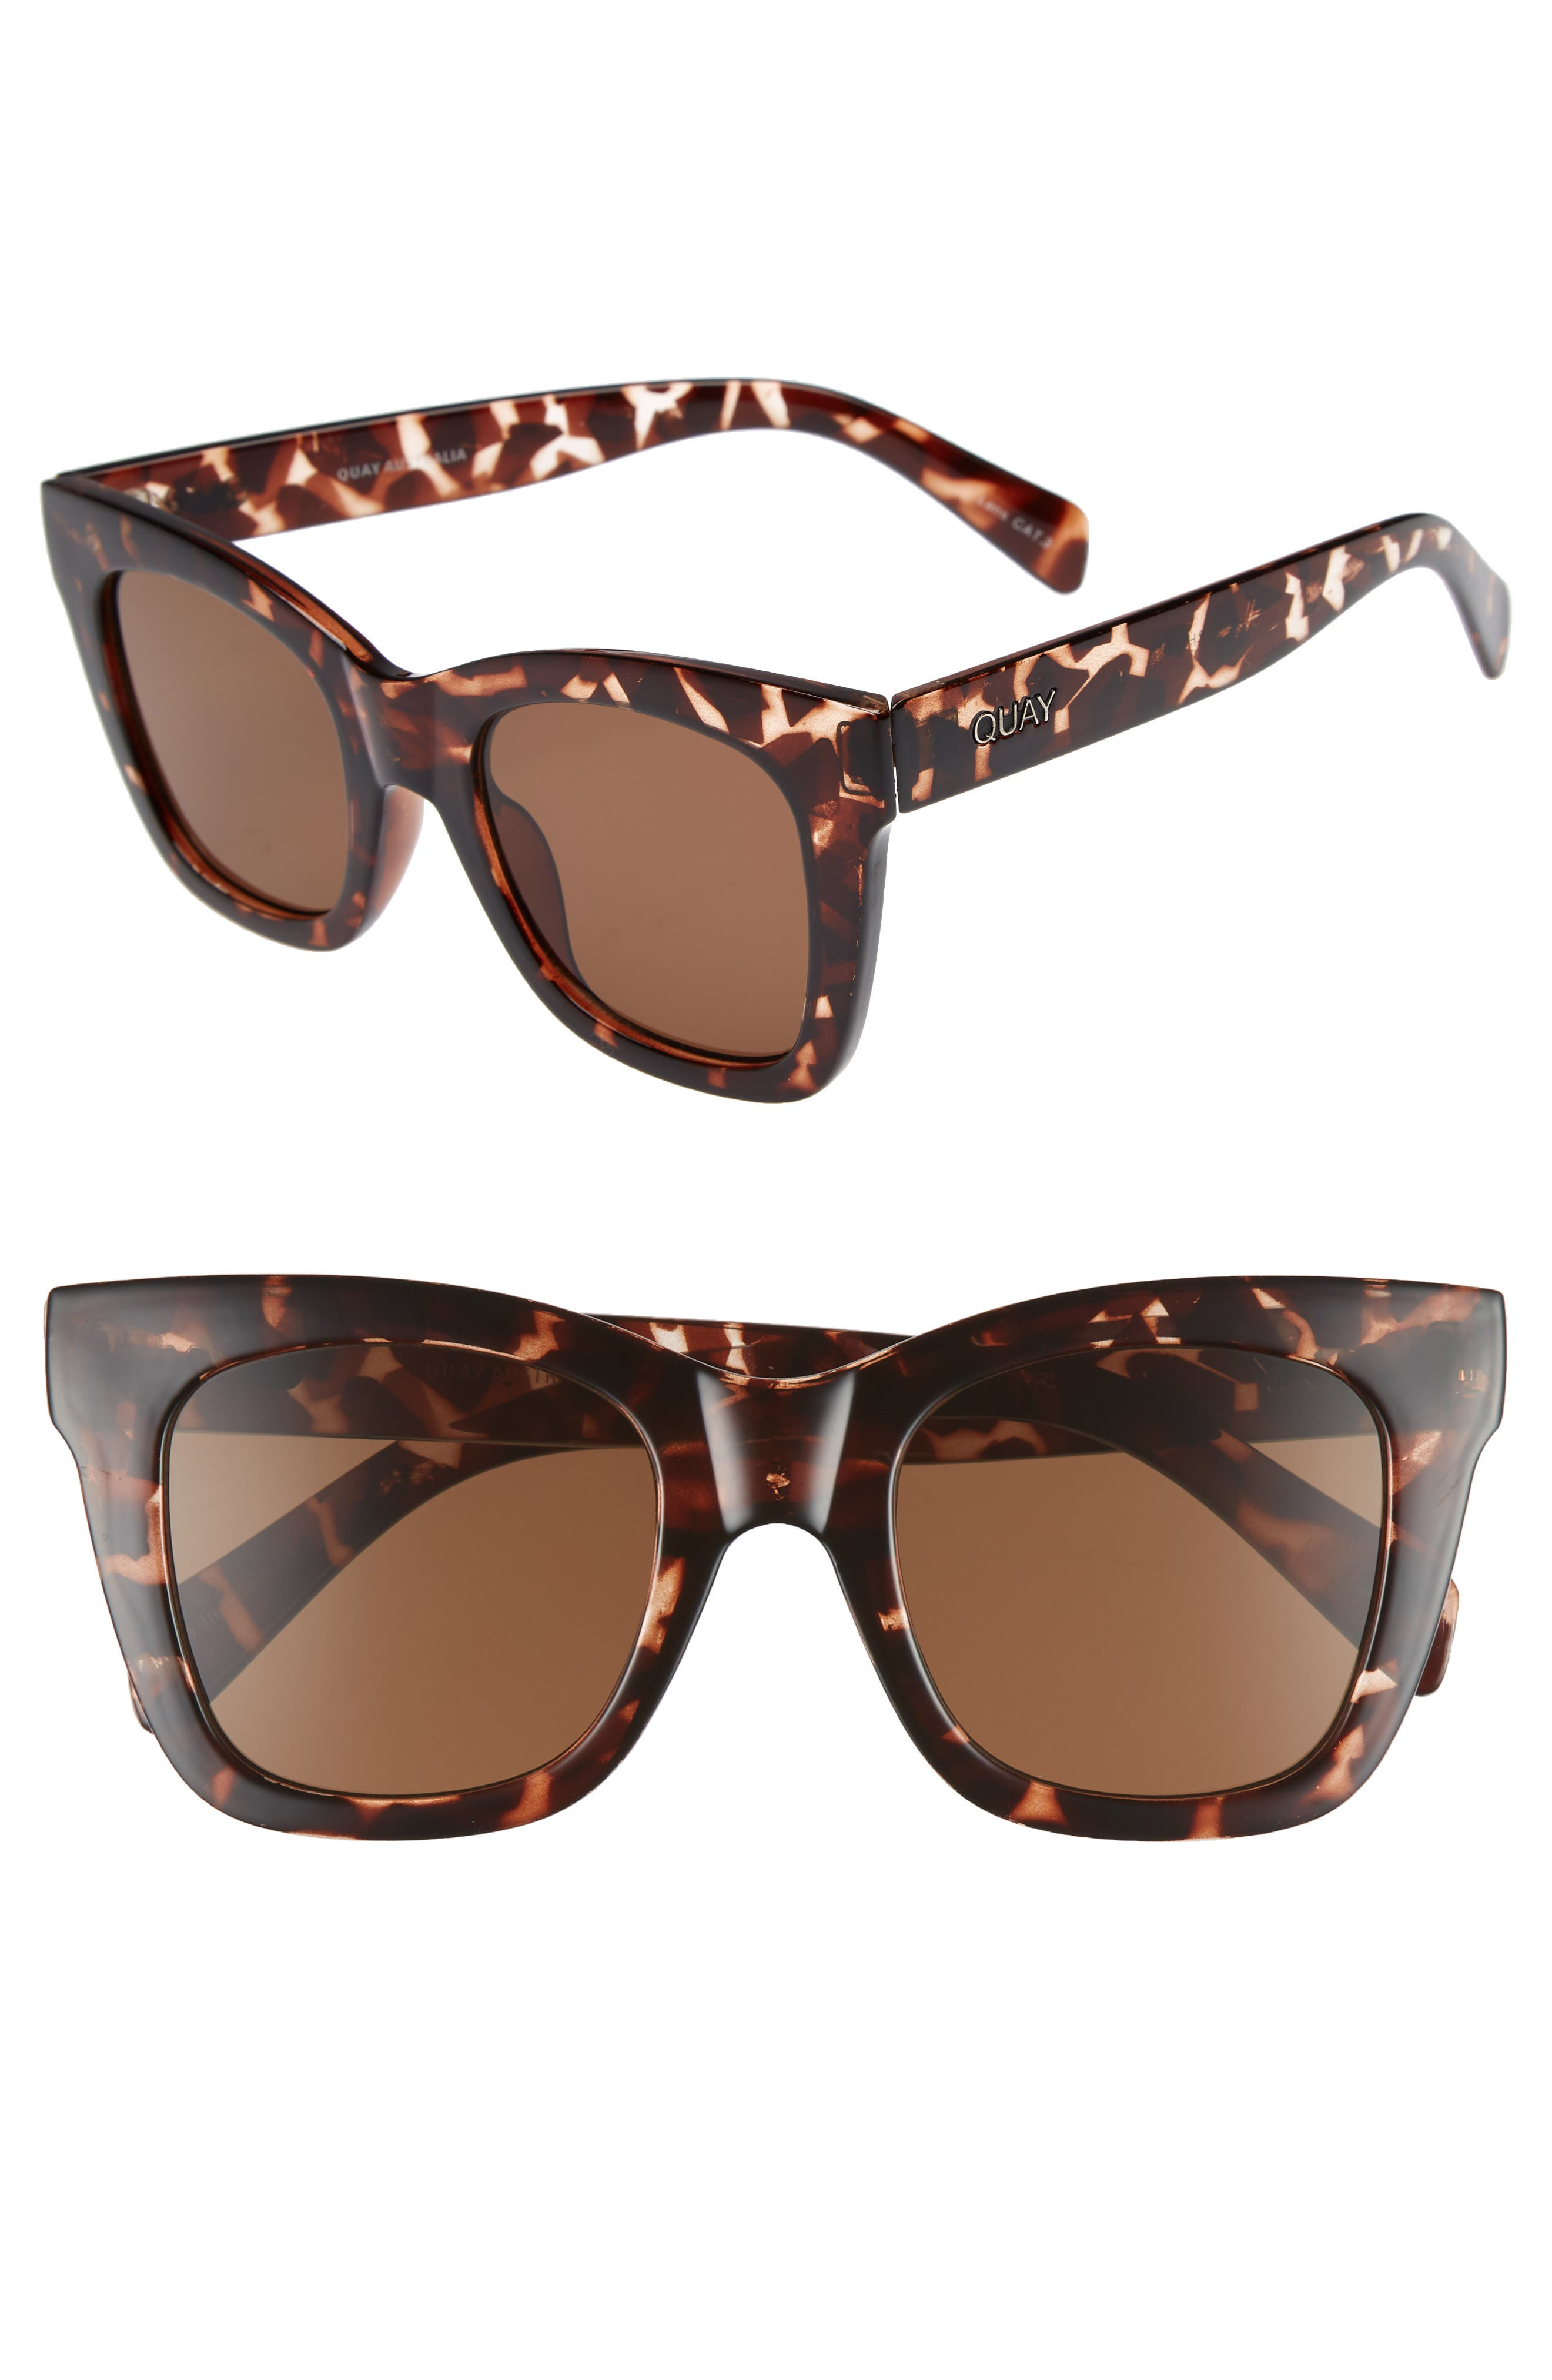 After Hours 50mm Square Sunglasses,                             Main thumbnail 1, color,                             TORT / BROWN